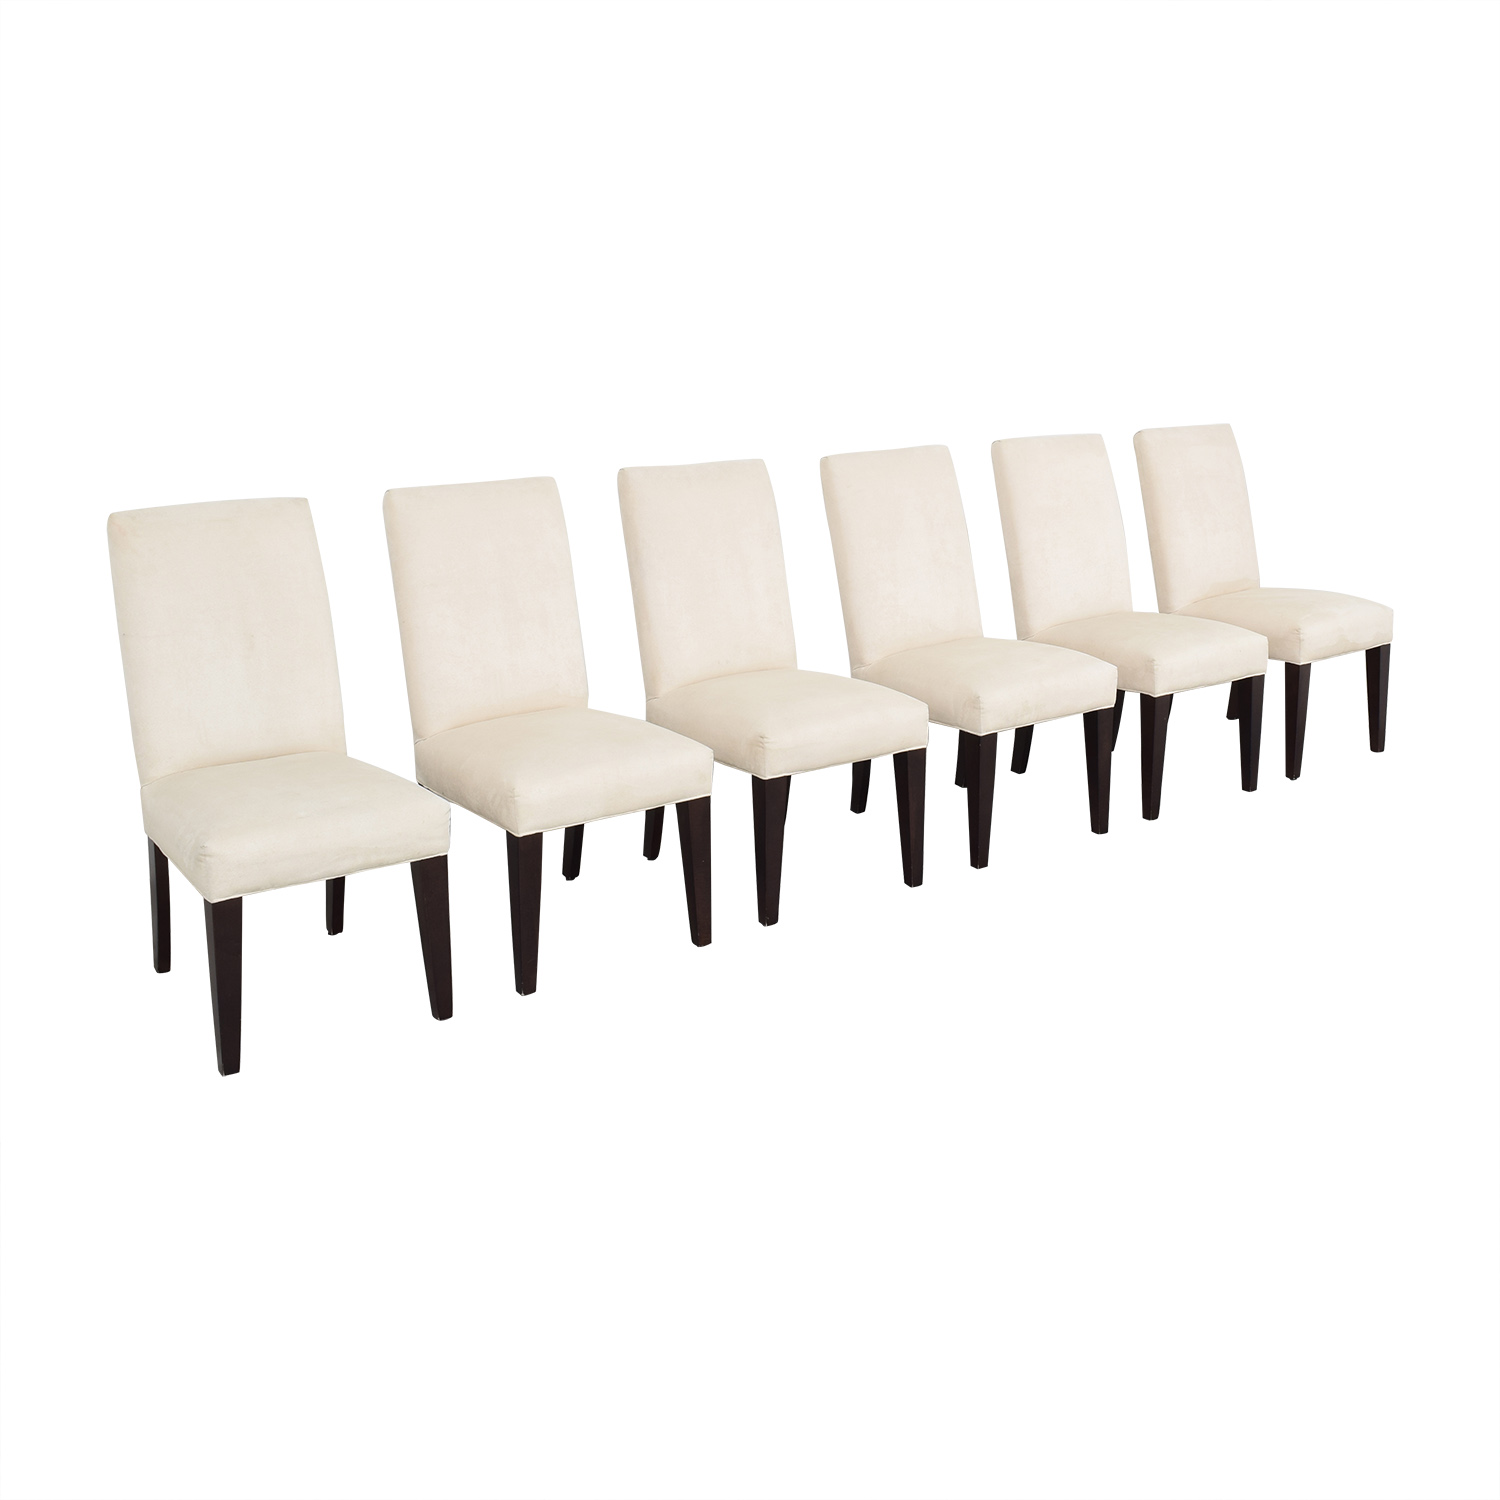 Mitchell Gold + Bob Williams Mitchell Gold + Bob Williams Anthony Side Dining Chairs for sale